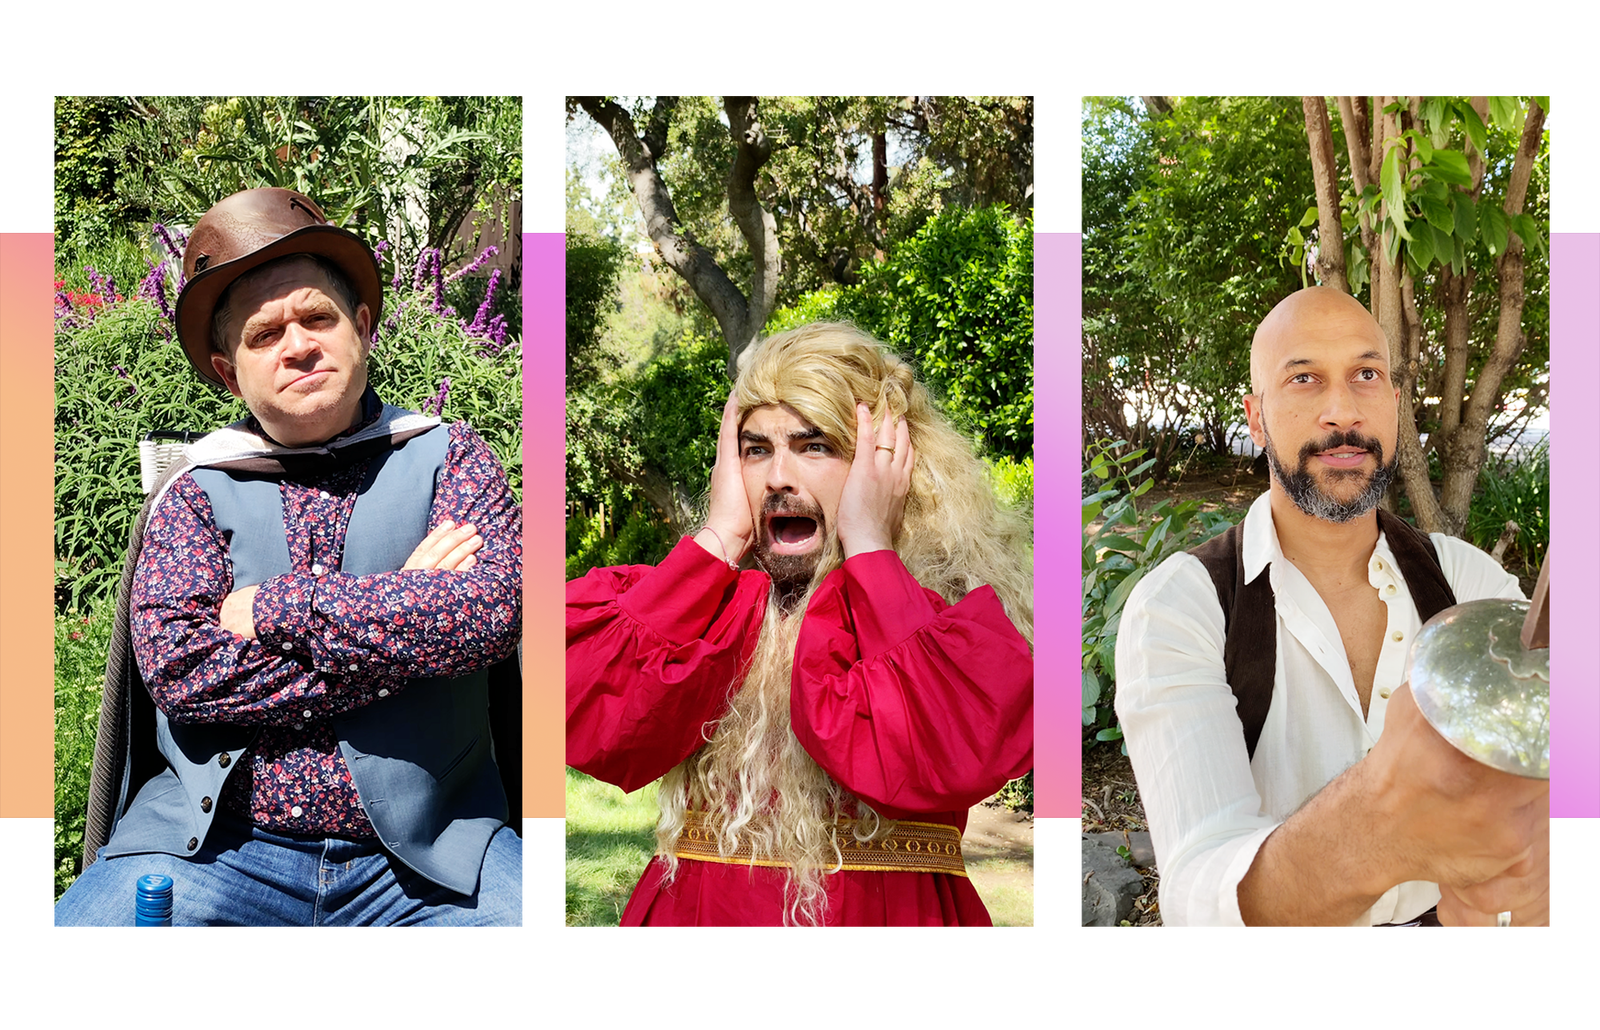 Watch the CelebrityFilled FanFilm Version of The Princess Bride